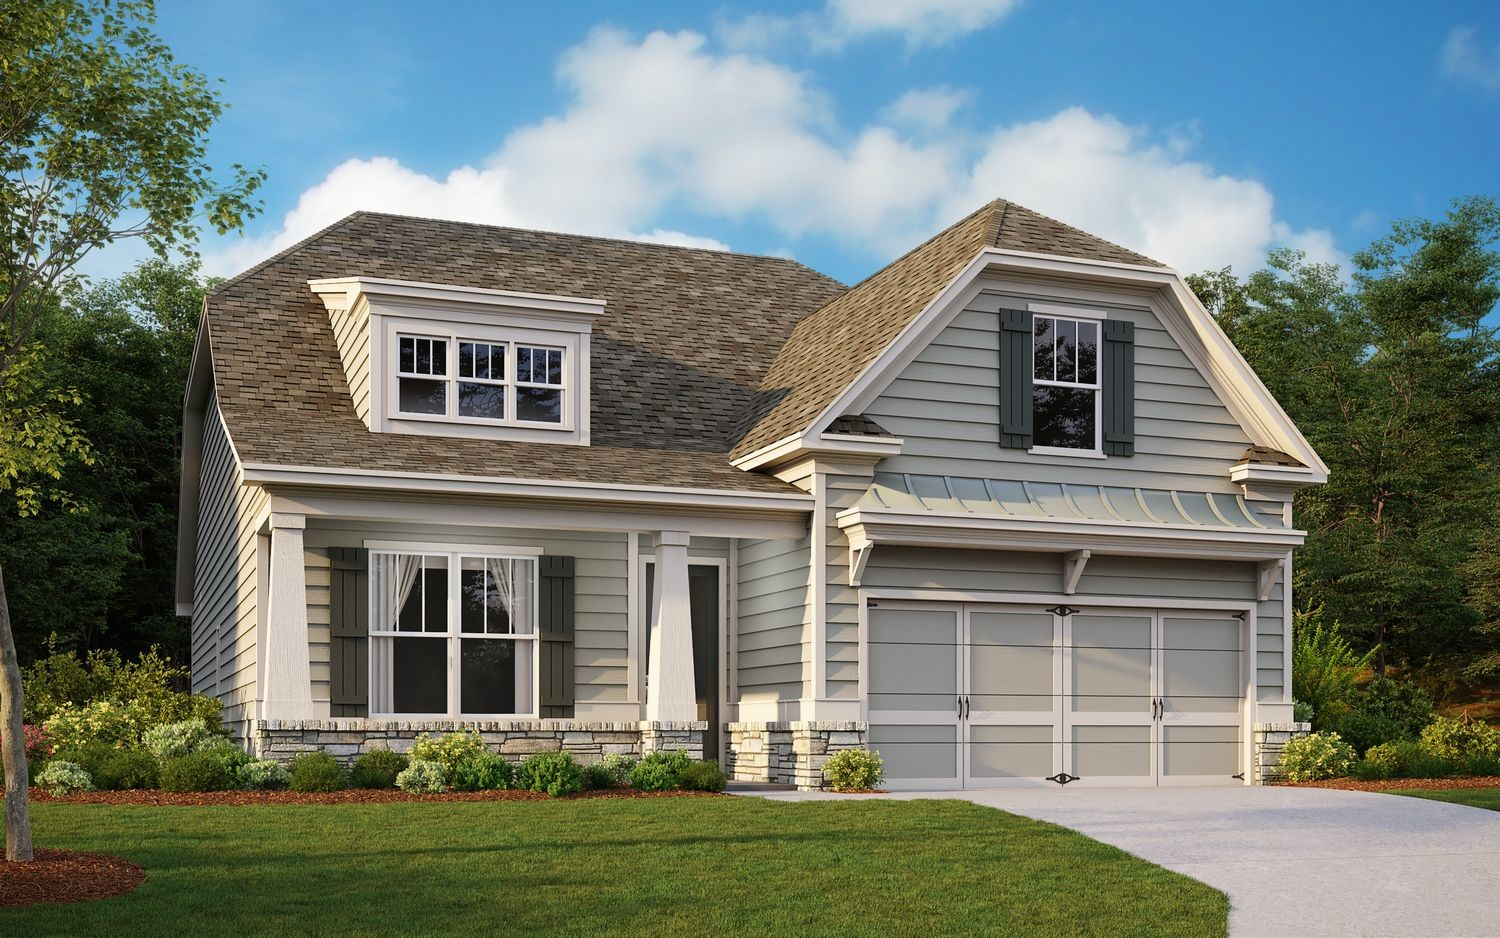 Move In Ready New Home In NatureWalk at Seven Hills Community